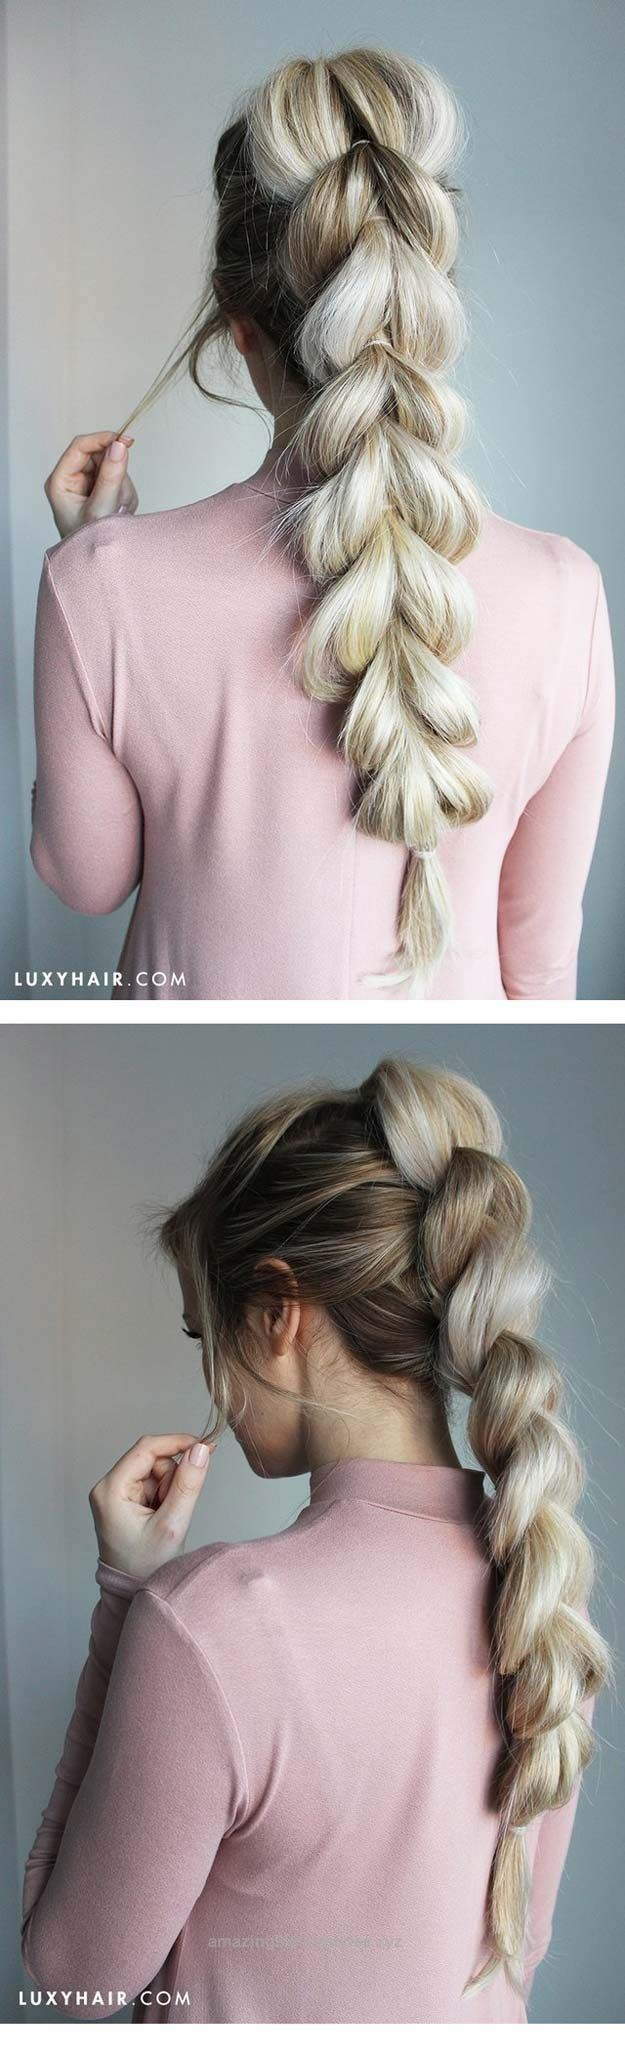 Adorable Tips To Instantly Make Your Hair Look Thicker – How To: Pull-Through Braid Easy Braid Hairstyle – DIY Products, Step By Step Tutorials, And Tips And Tricks For Hairstyles That Make Your ..